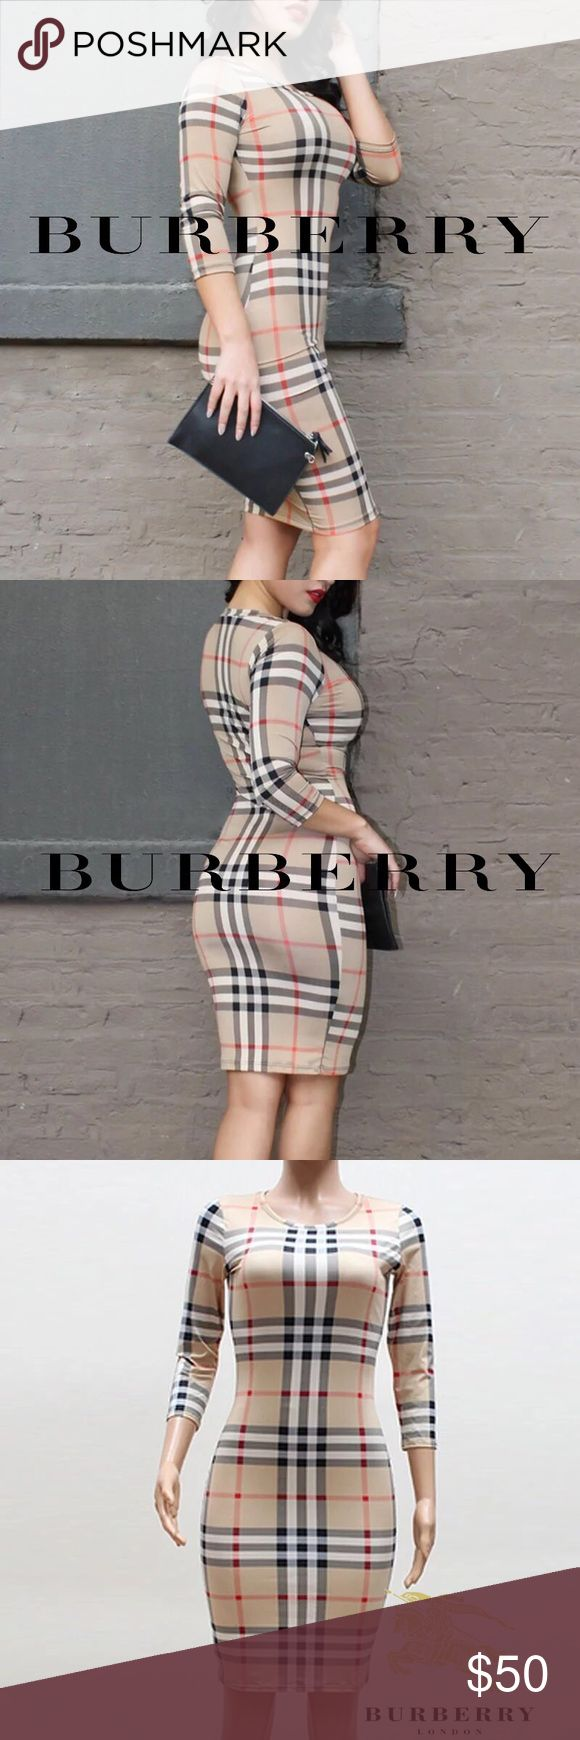 ⚜️Burberry® Inspired Brit printed Dress⚜️ ⚜️Burberry® Inspired Brit printed Dress⚜️  Brand New without Tags, in package dress.   Size:Small. (Fits also S/M)  Great stretchy material of cotton blends and polyester with bodycon silhouette. Perfect for summer evenings or cocktail hour!  Price reflects. INo name tag  Burberry Dresses Midi